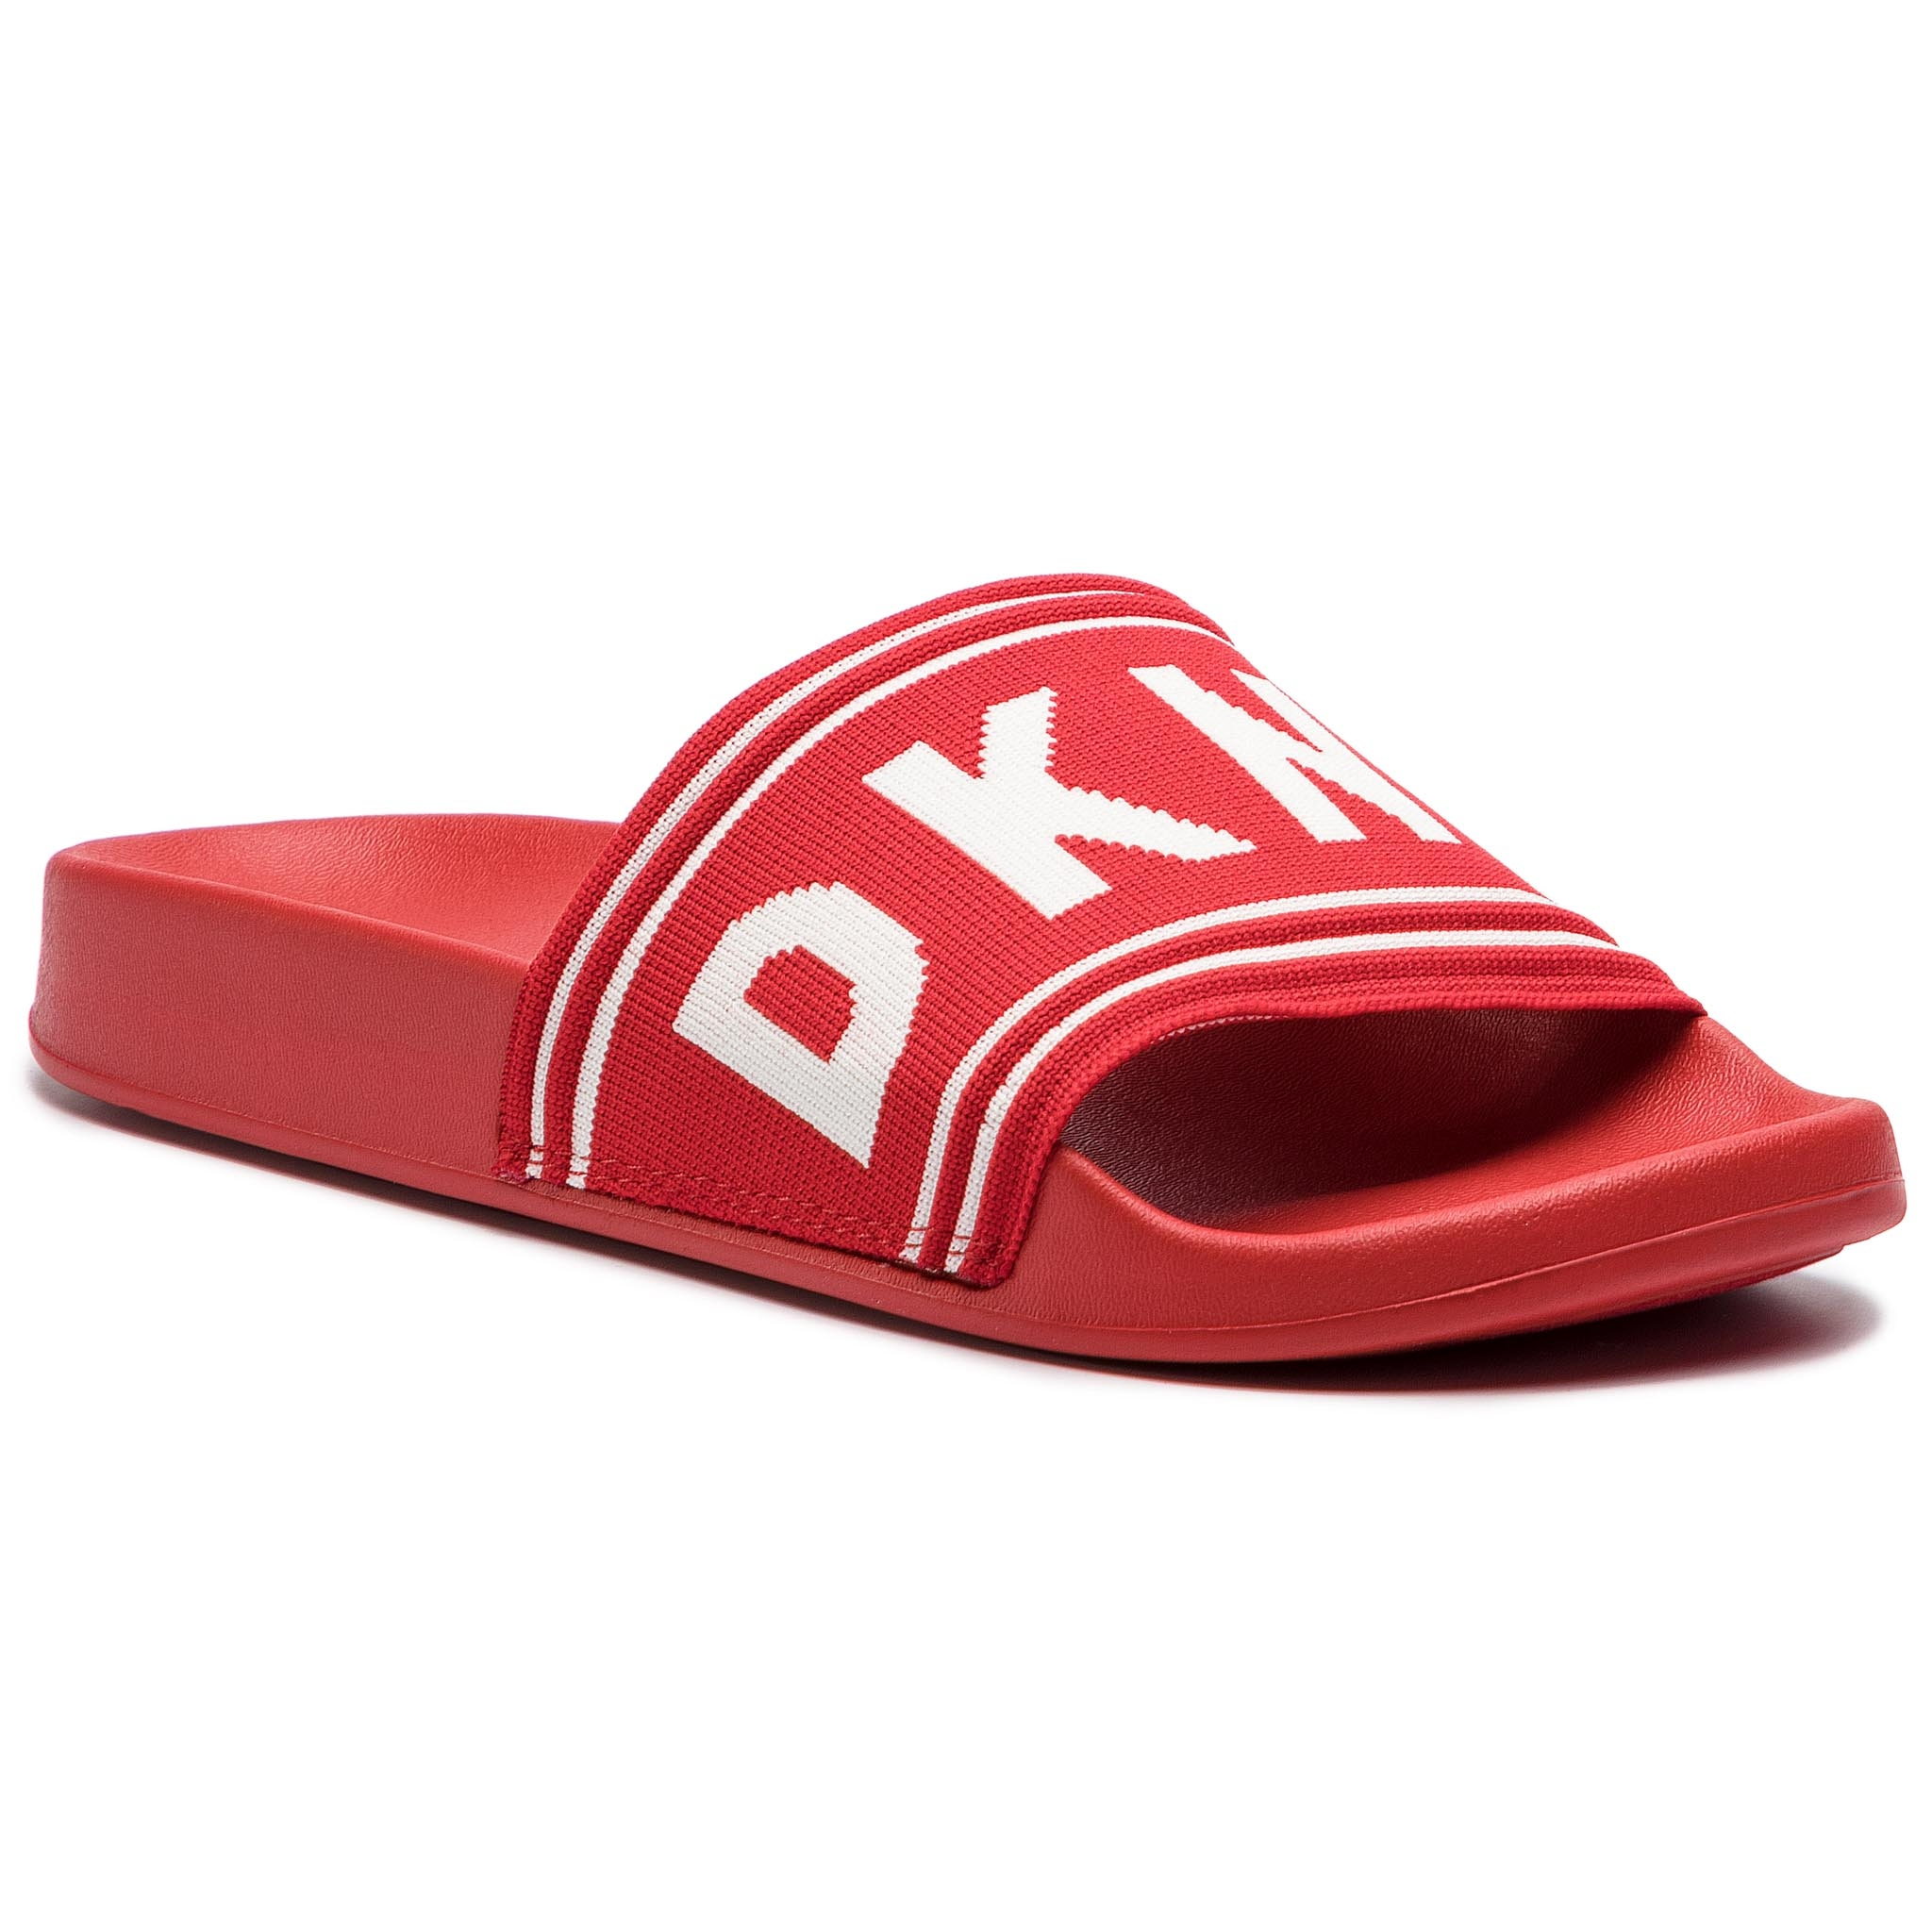 Șlapi Dkny - Zora K4855294 Rouge imagine epantofi.ro 2021